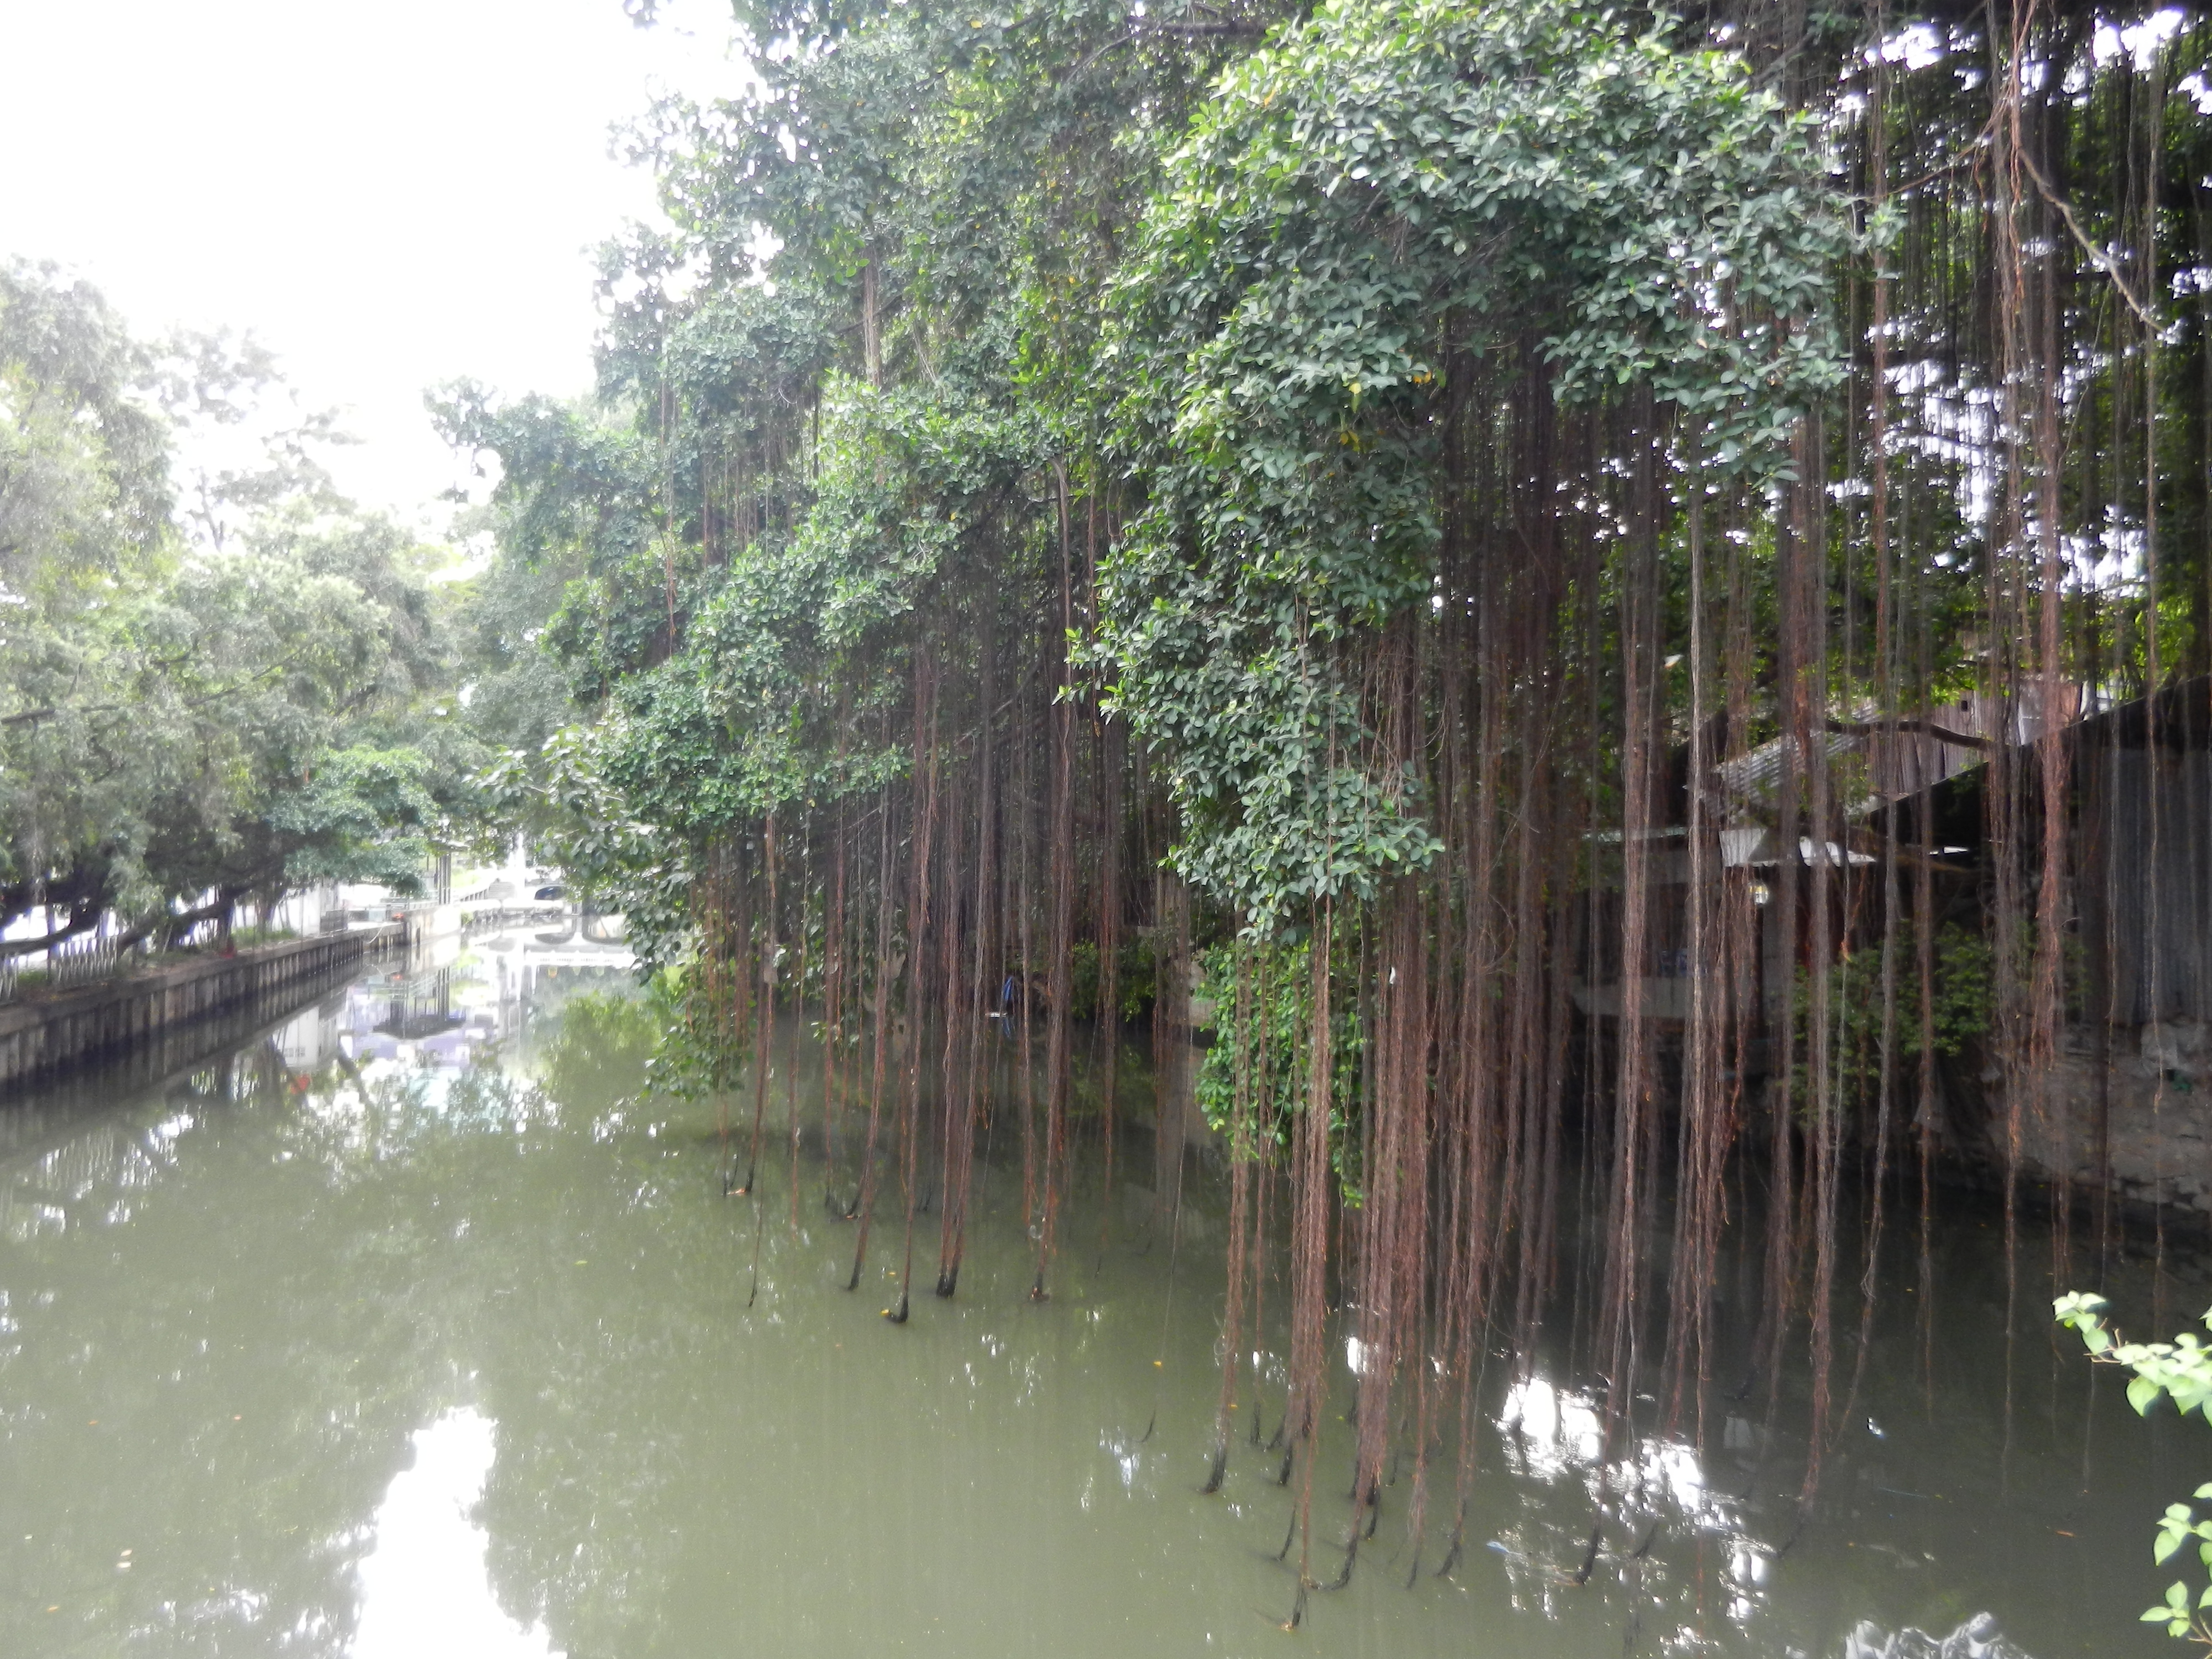 Water canal with native Asian tree hanging over it.